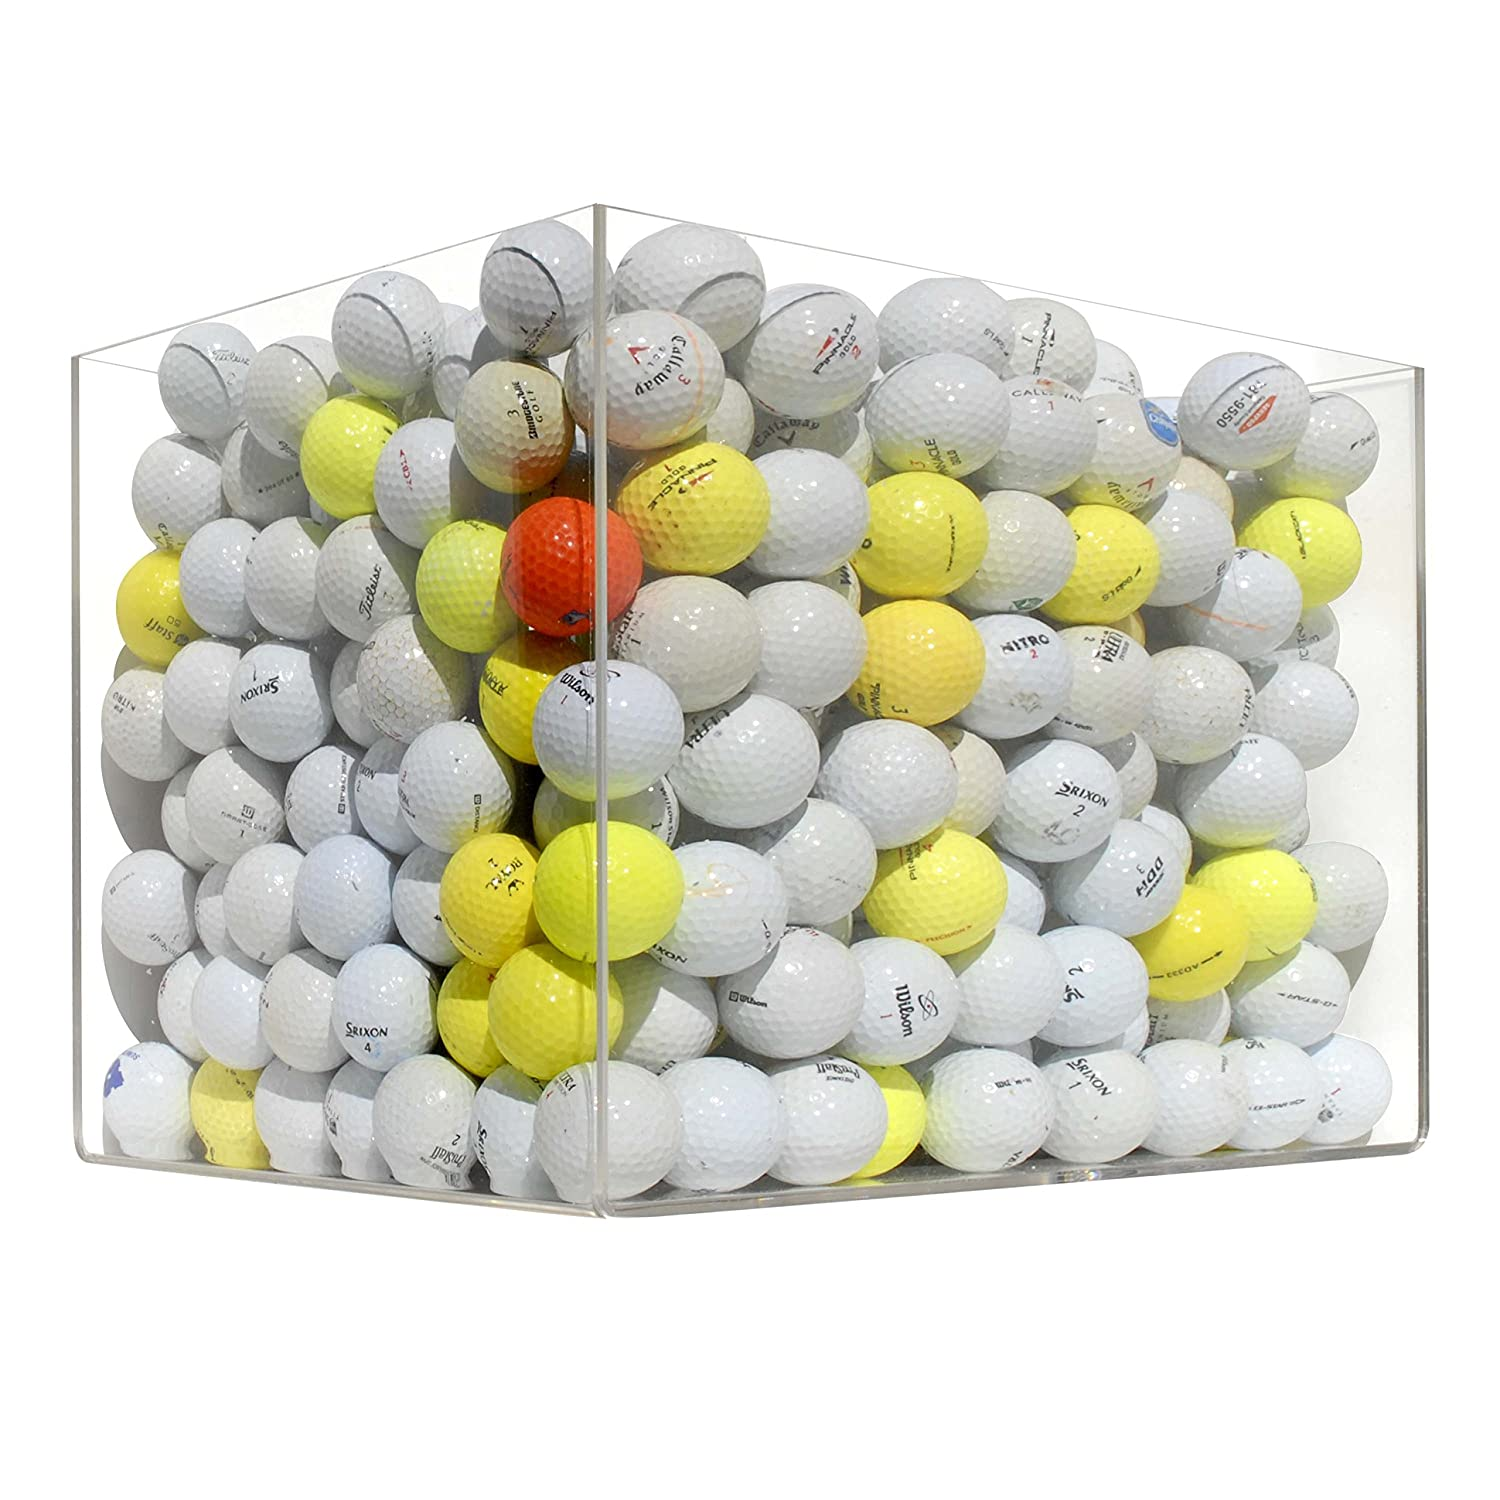 600 D Used Range Ball Hit Away Golf Balls Practice Shag